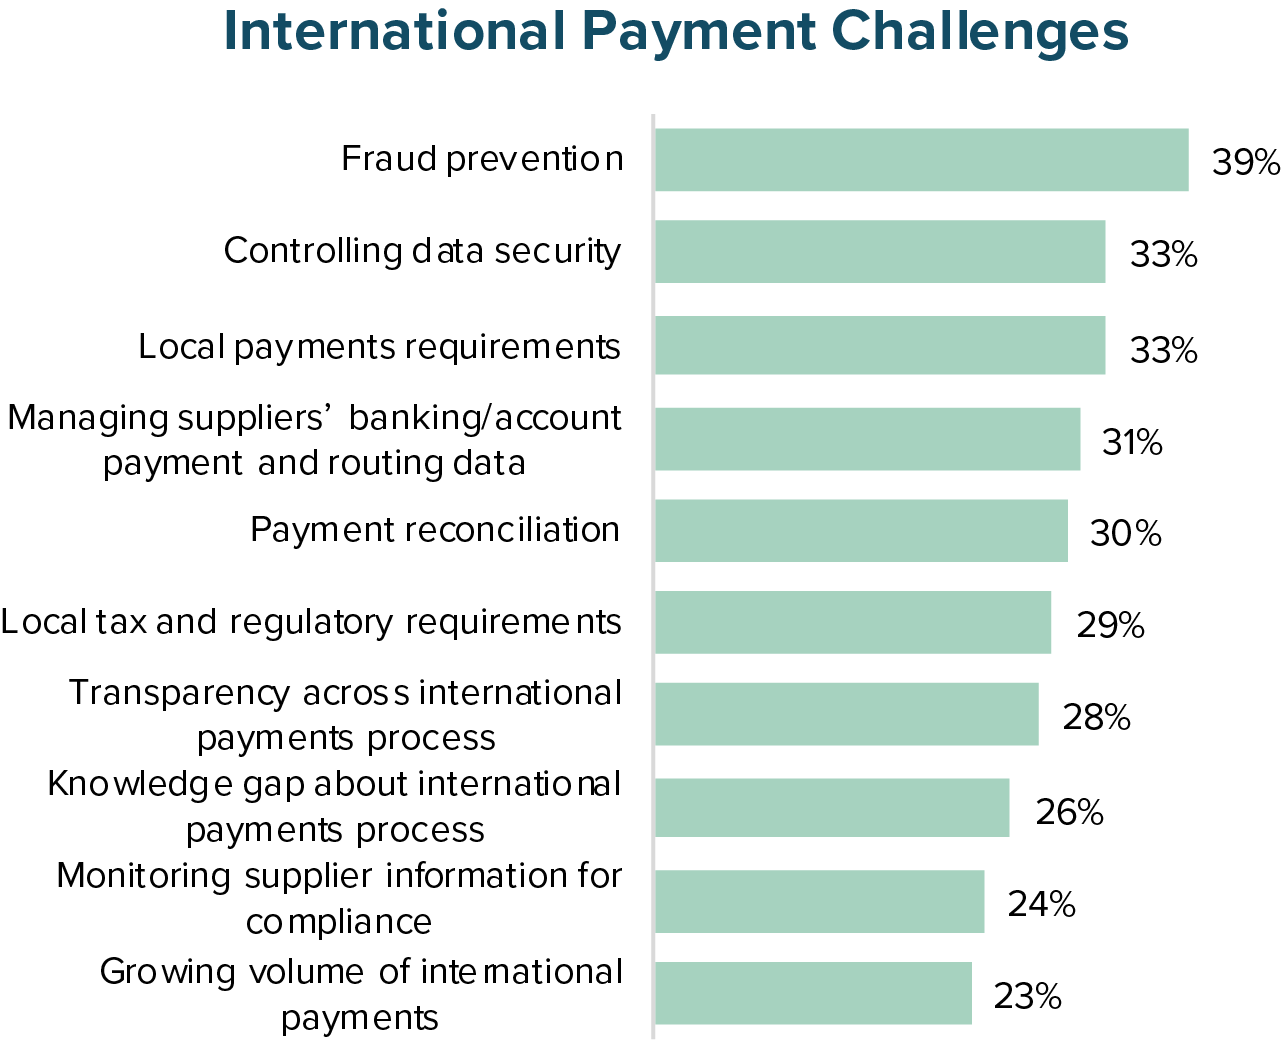 International Payment Challenges